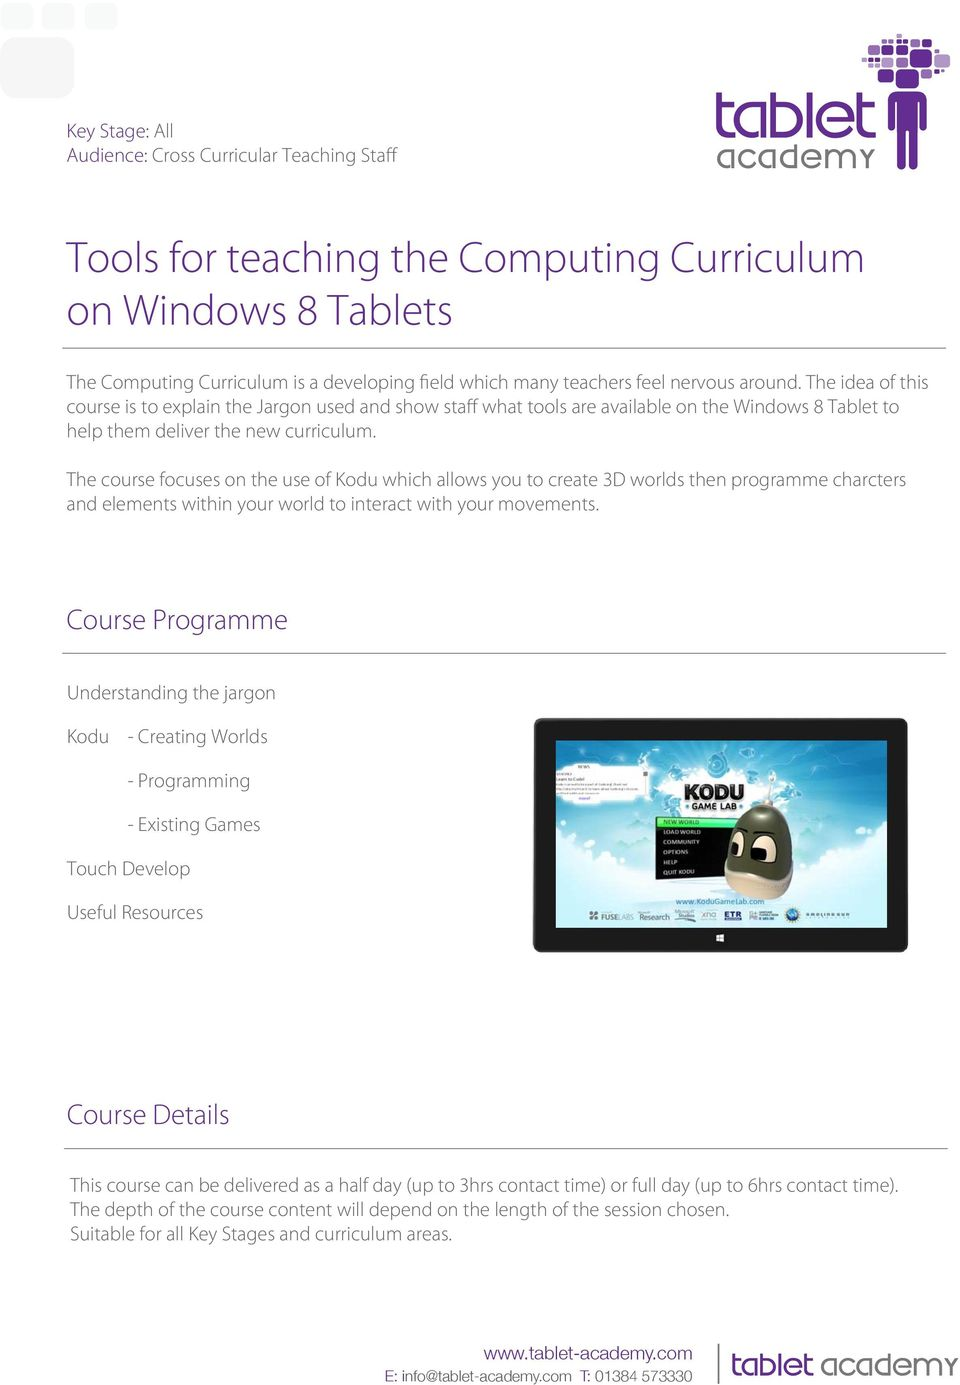 The idea of this course is to explain the Jargon used and show staff what tools are available on the Windows 8 Tablet to help them deliver the new